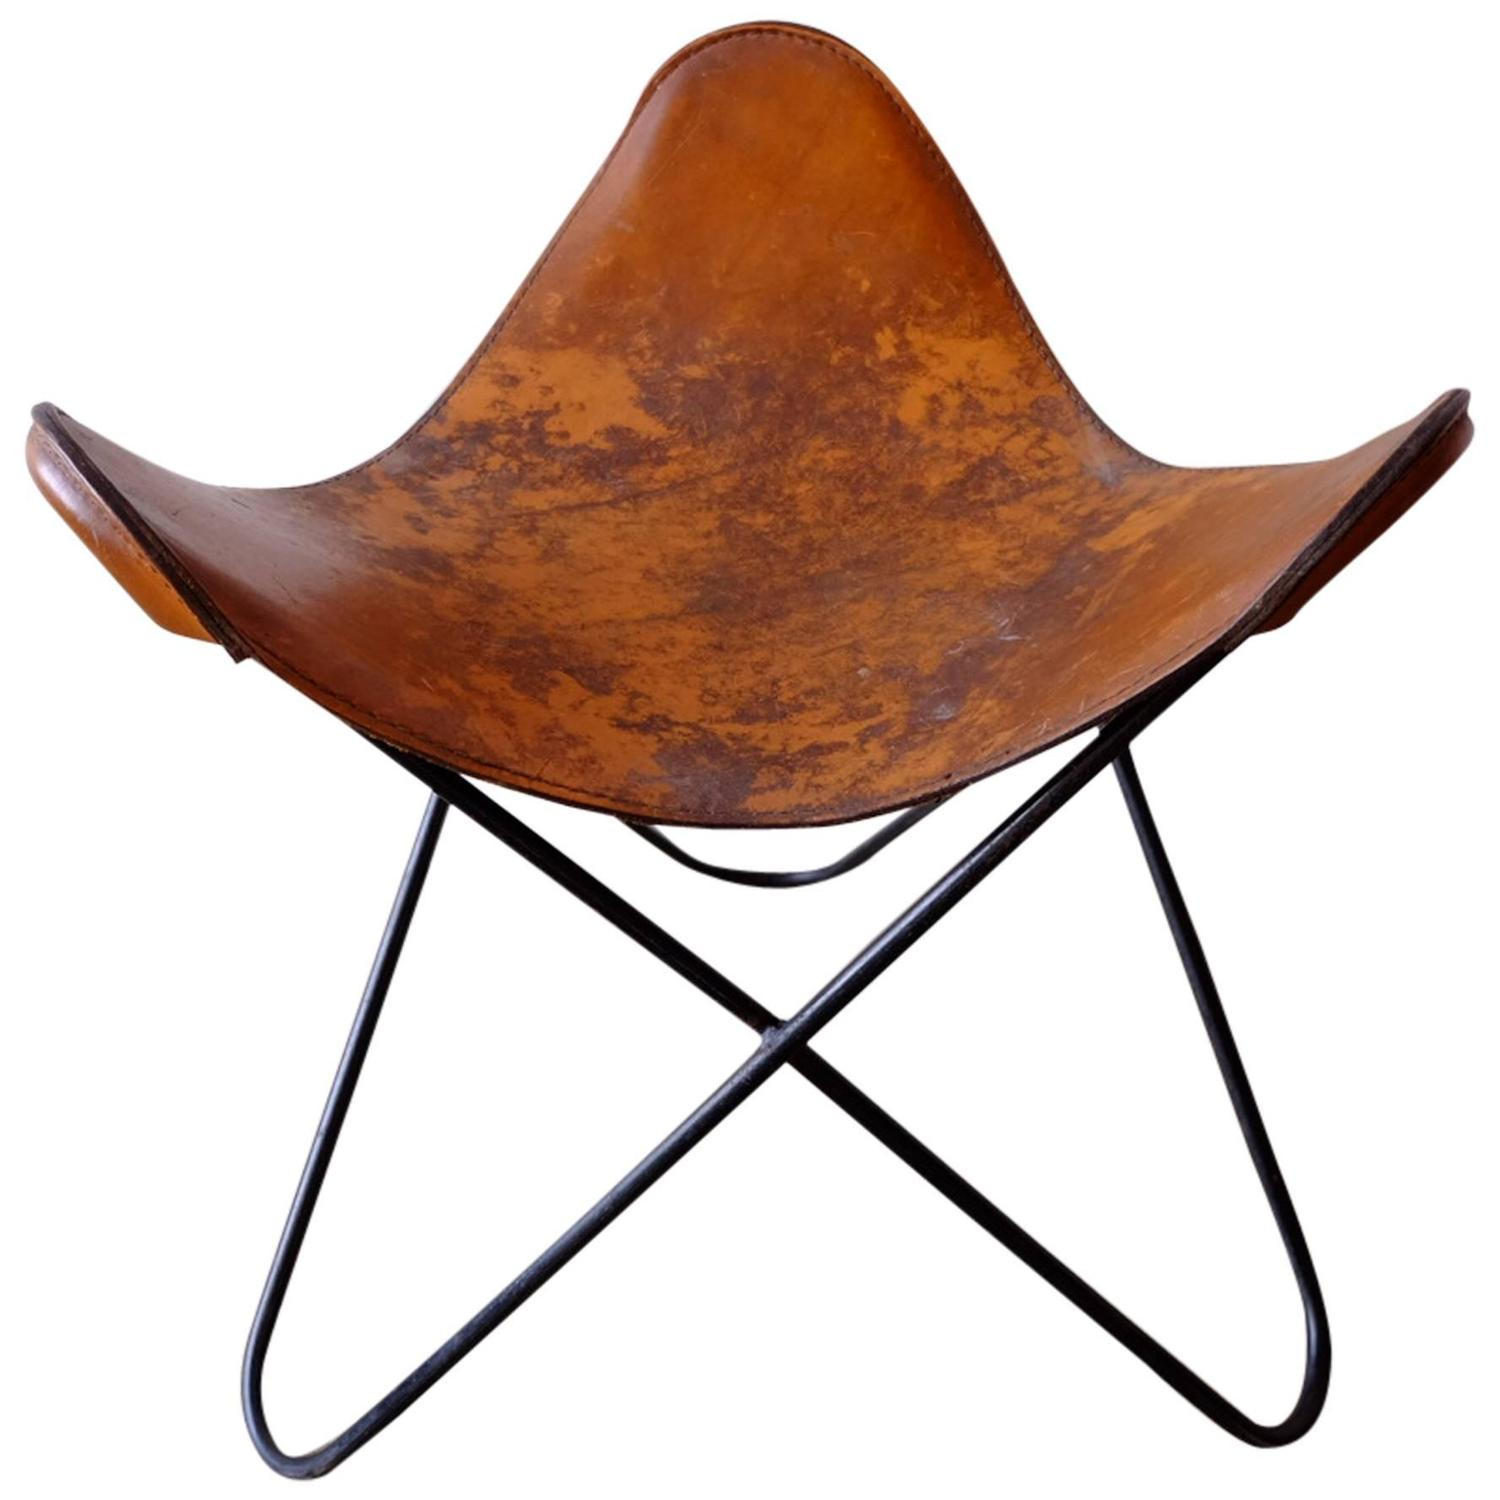 Rare Butterfly Stool By Jorge Ferrari Hardoy For Knoll At